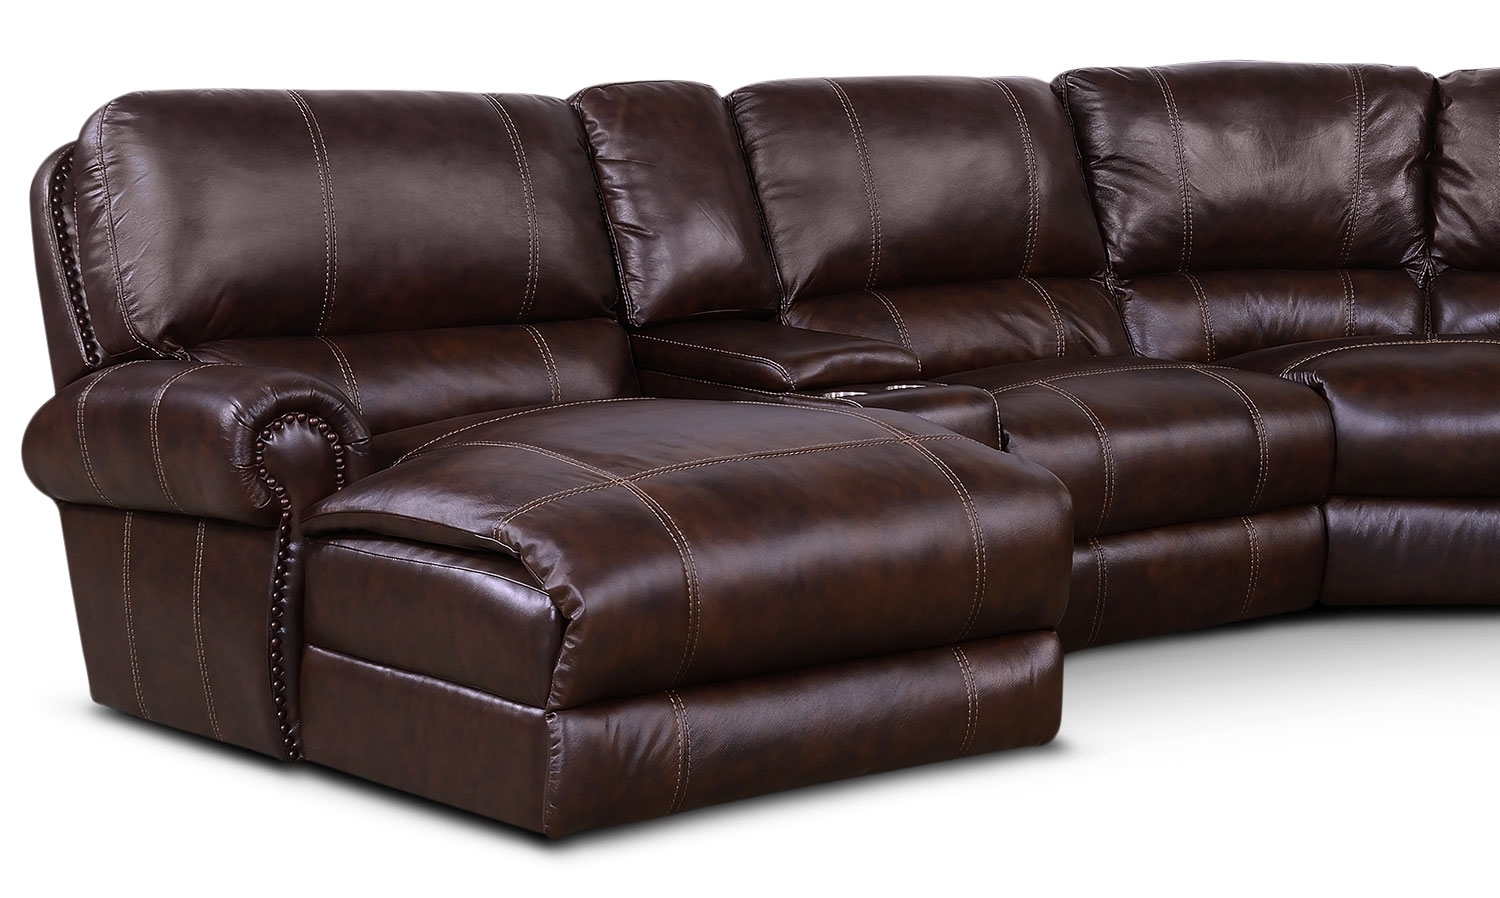 Dartmouth 6-Piece Power Reclining Sectional W/ Left-Facing Chaise pertaining to Norfolk Chocolate 3 Piece Sectionals With Laf Chaise (Image 10 of 30)